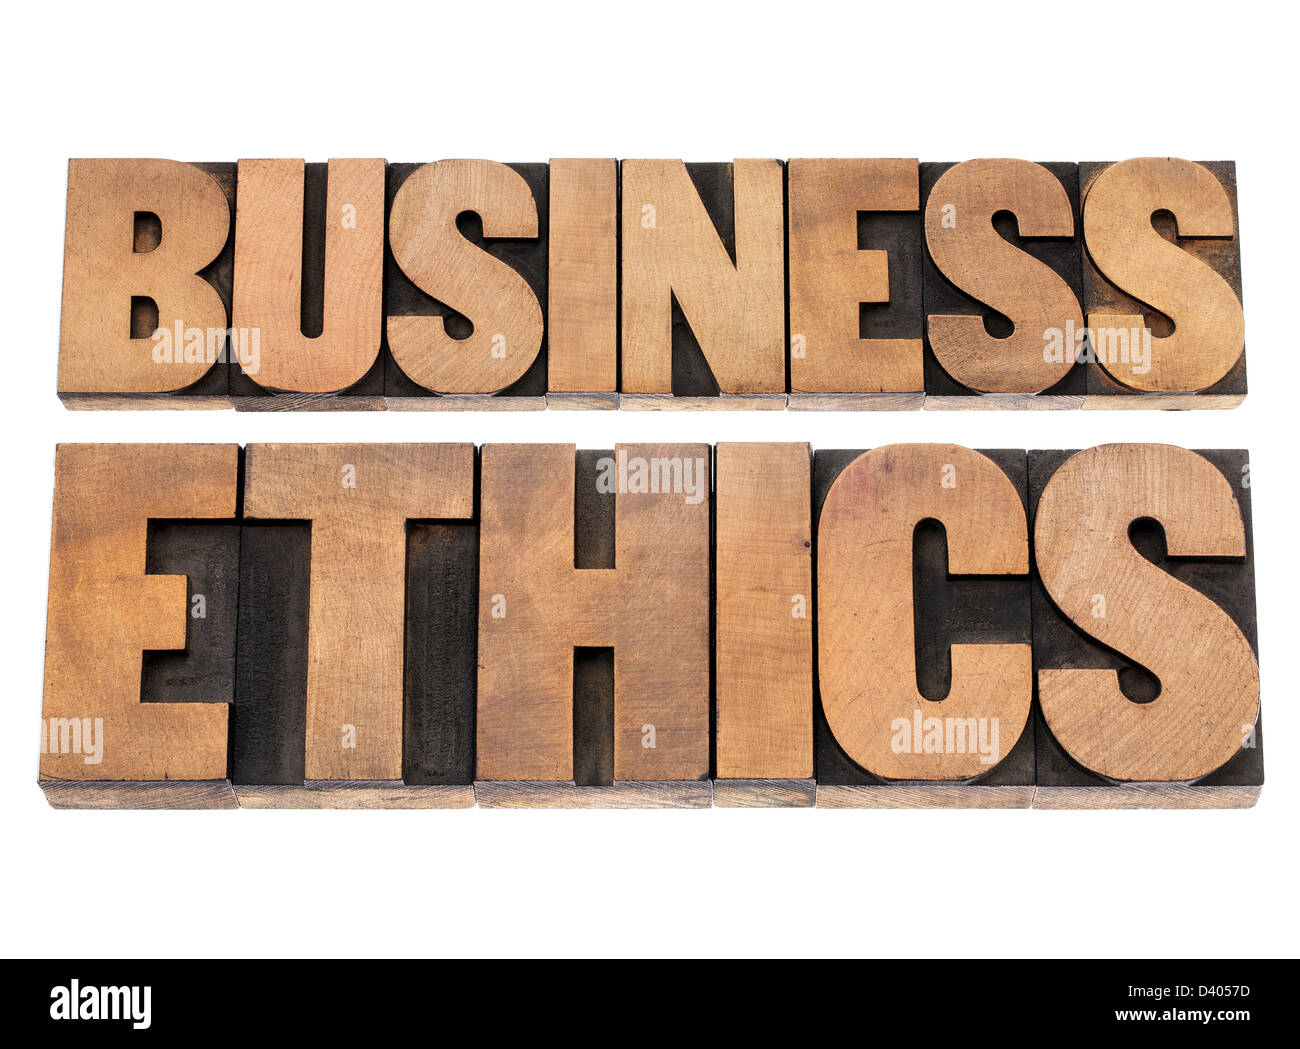 business ethics - isolated text in letterpress wood type printing blocks - Stock Image